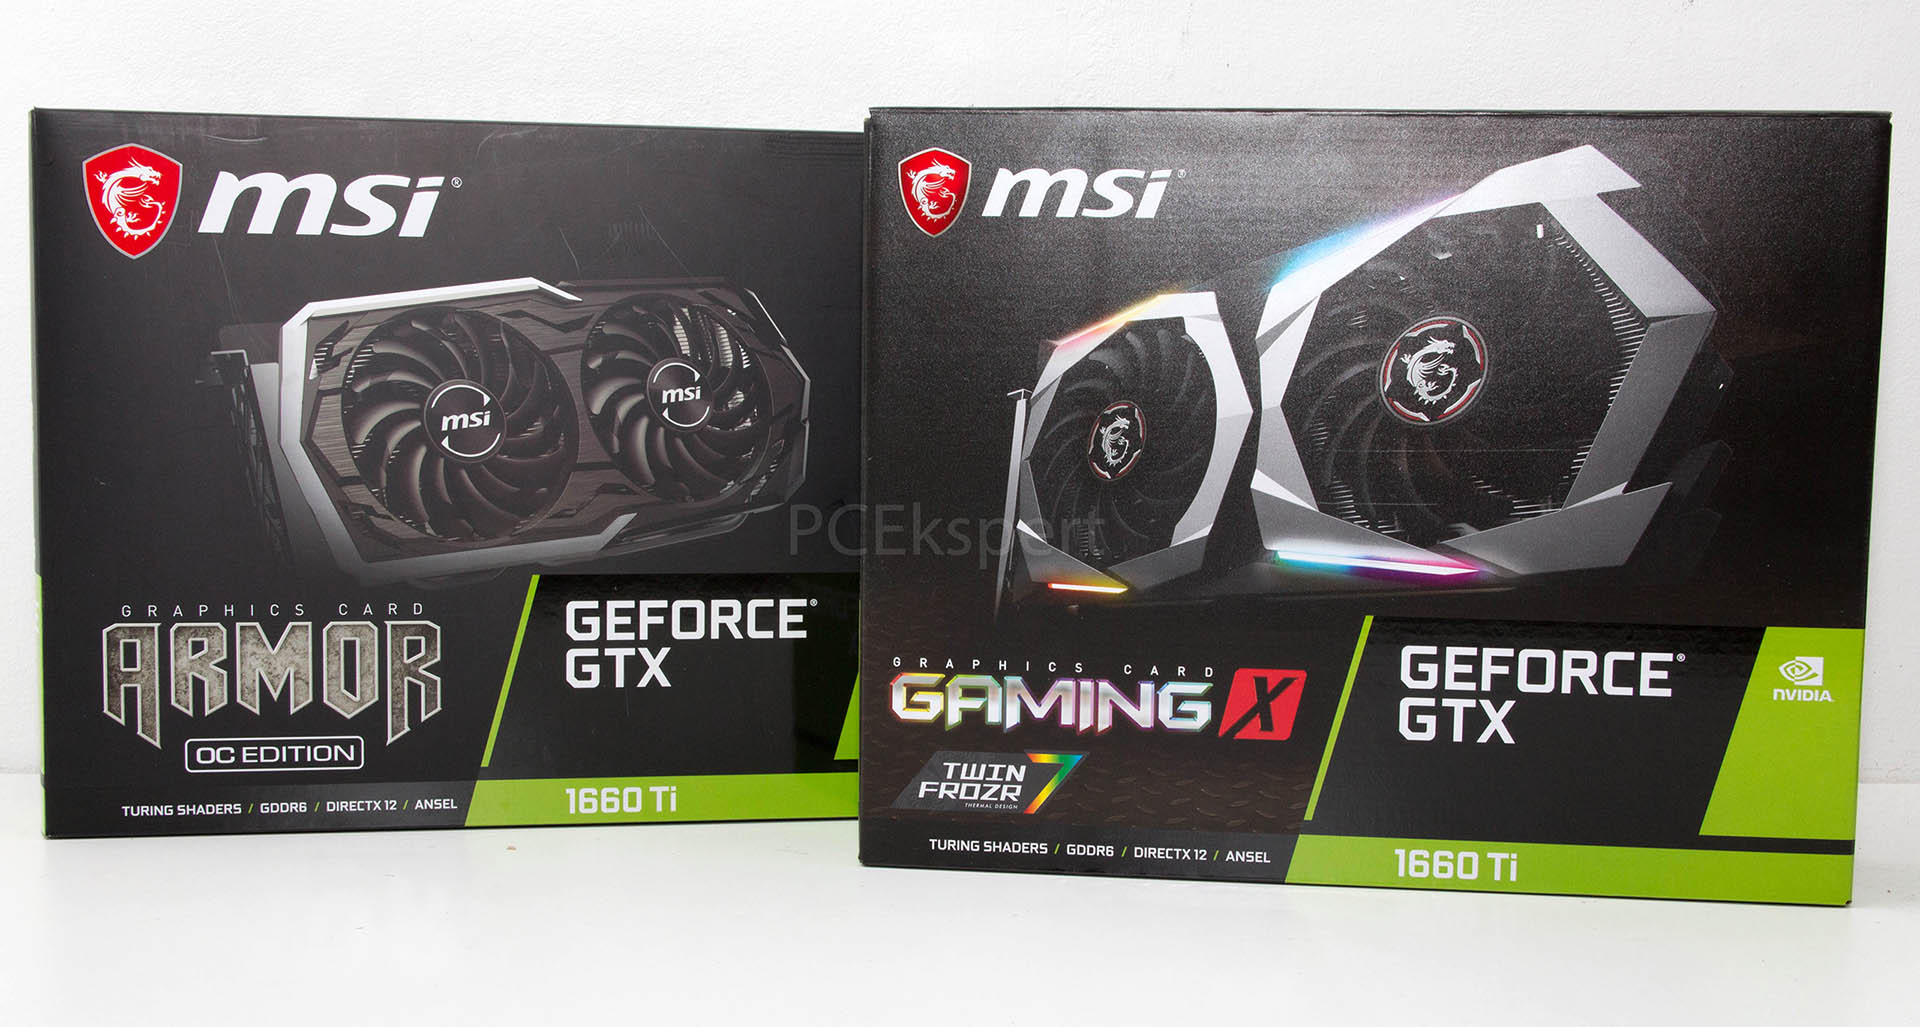 MSI GeForce GTX 1660 Ti Gaming X & Armor OC recenzija